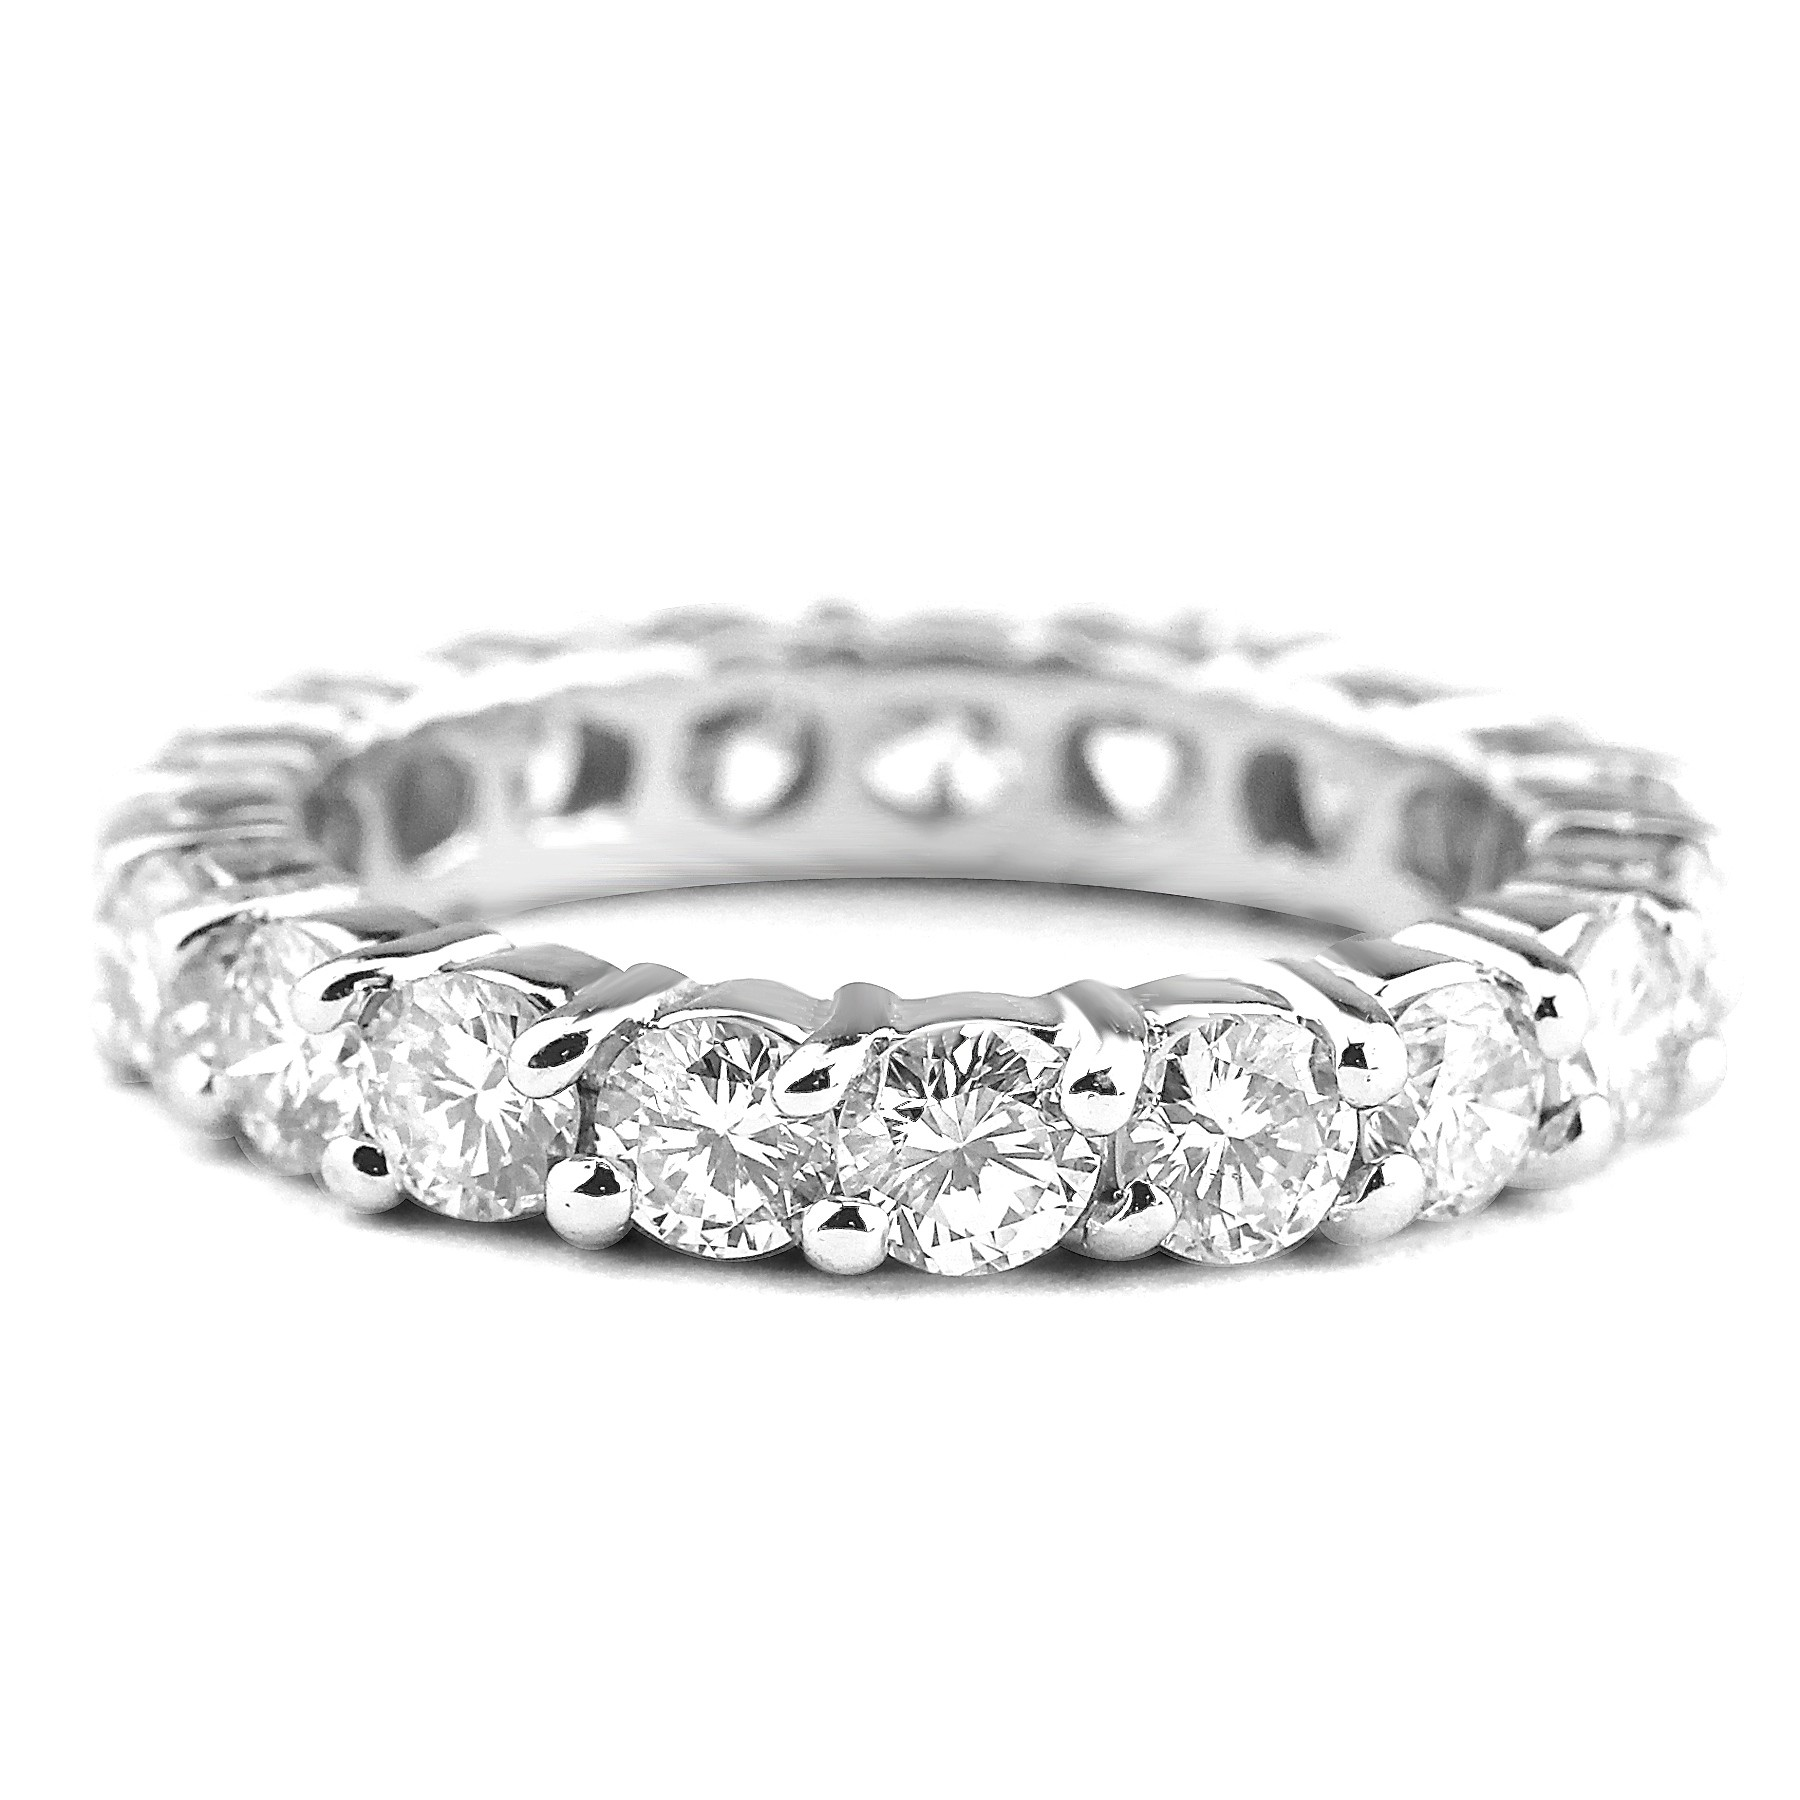 karat jackson only company products pav diamond eternity french band bands cut hole jewelry